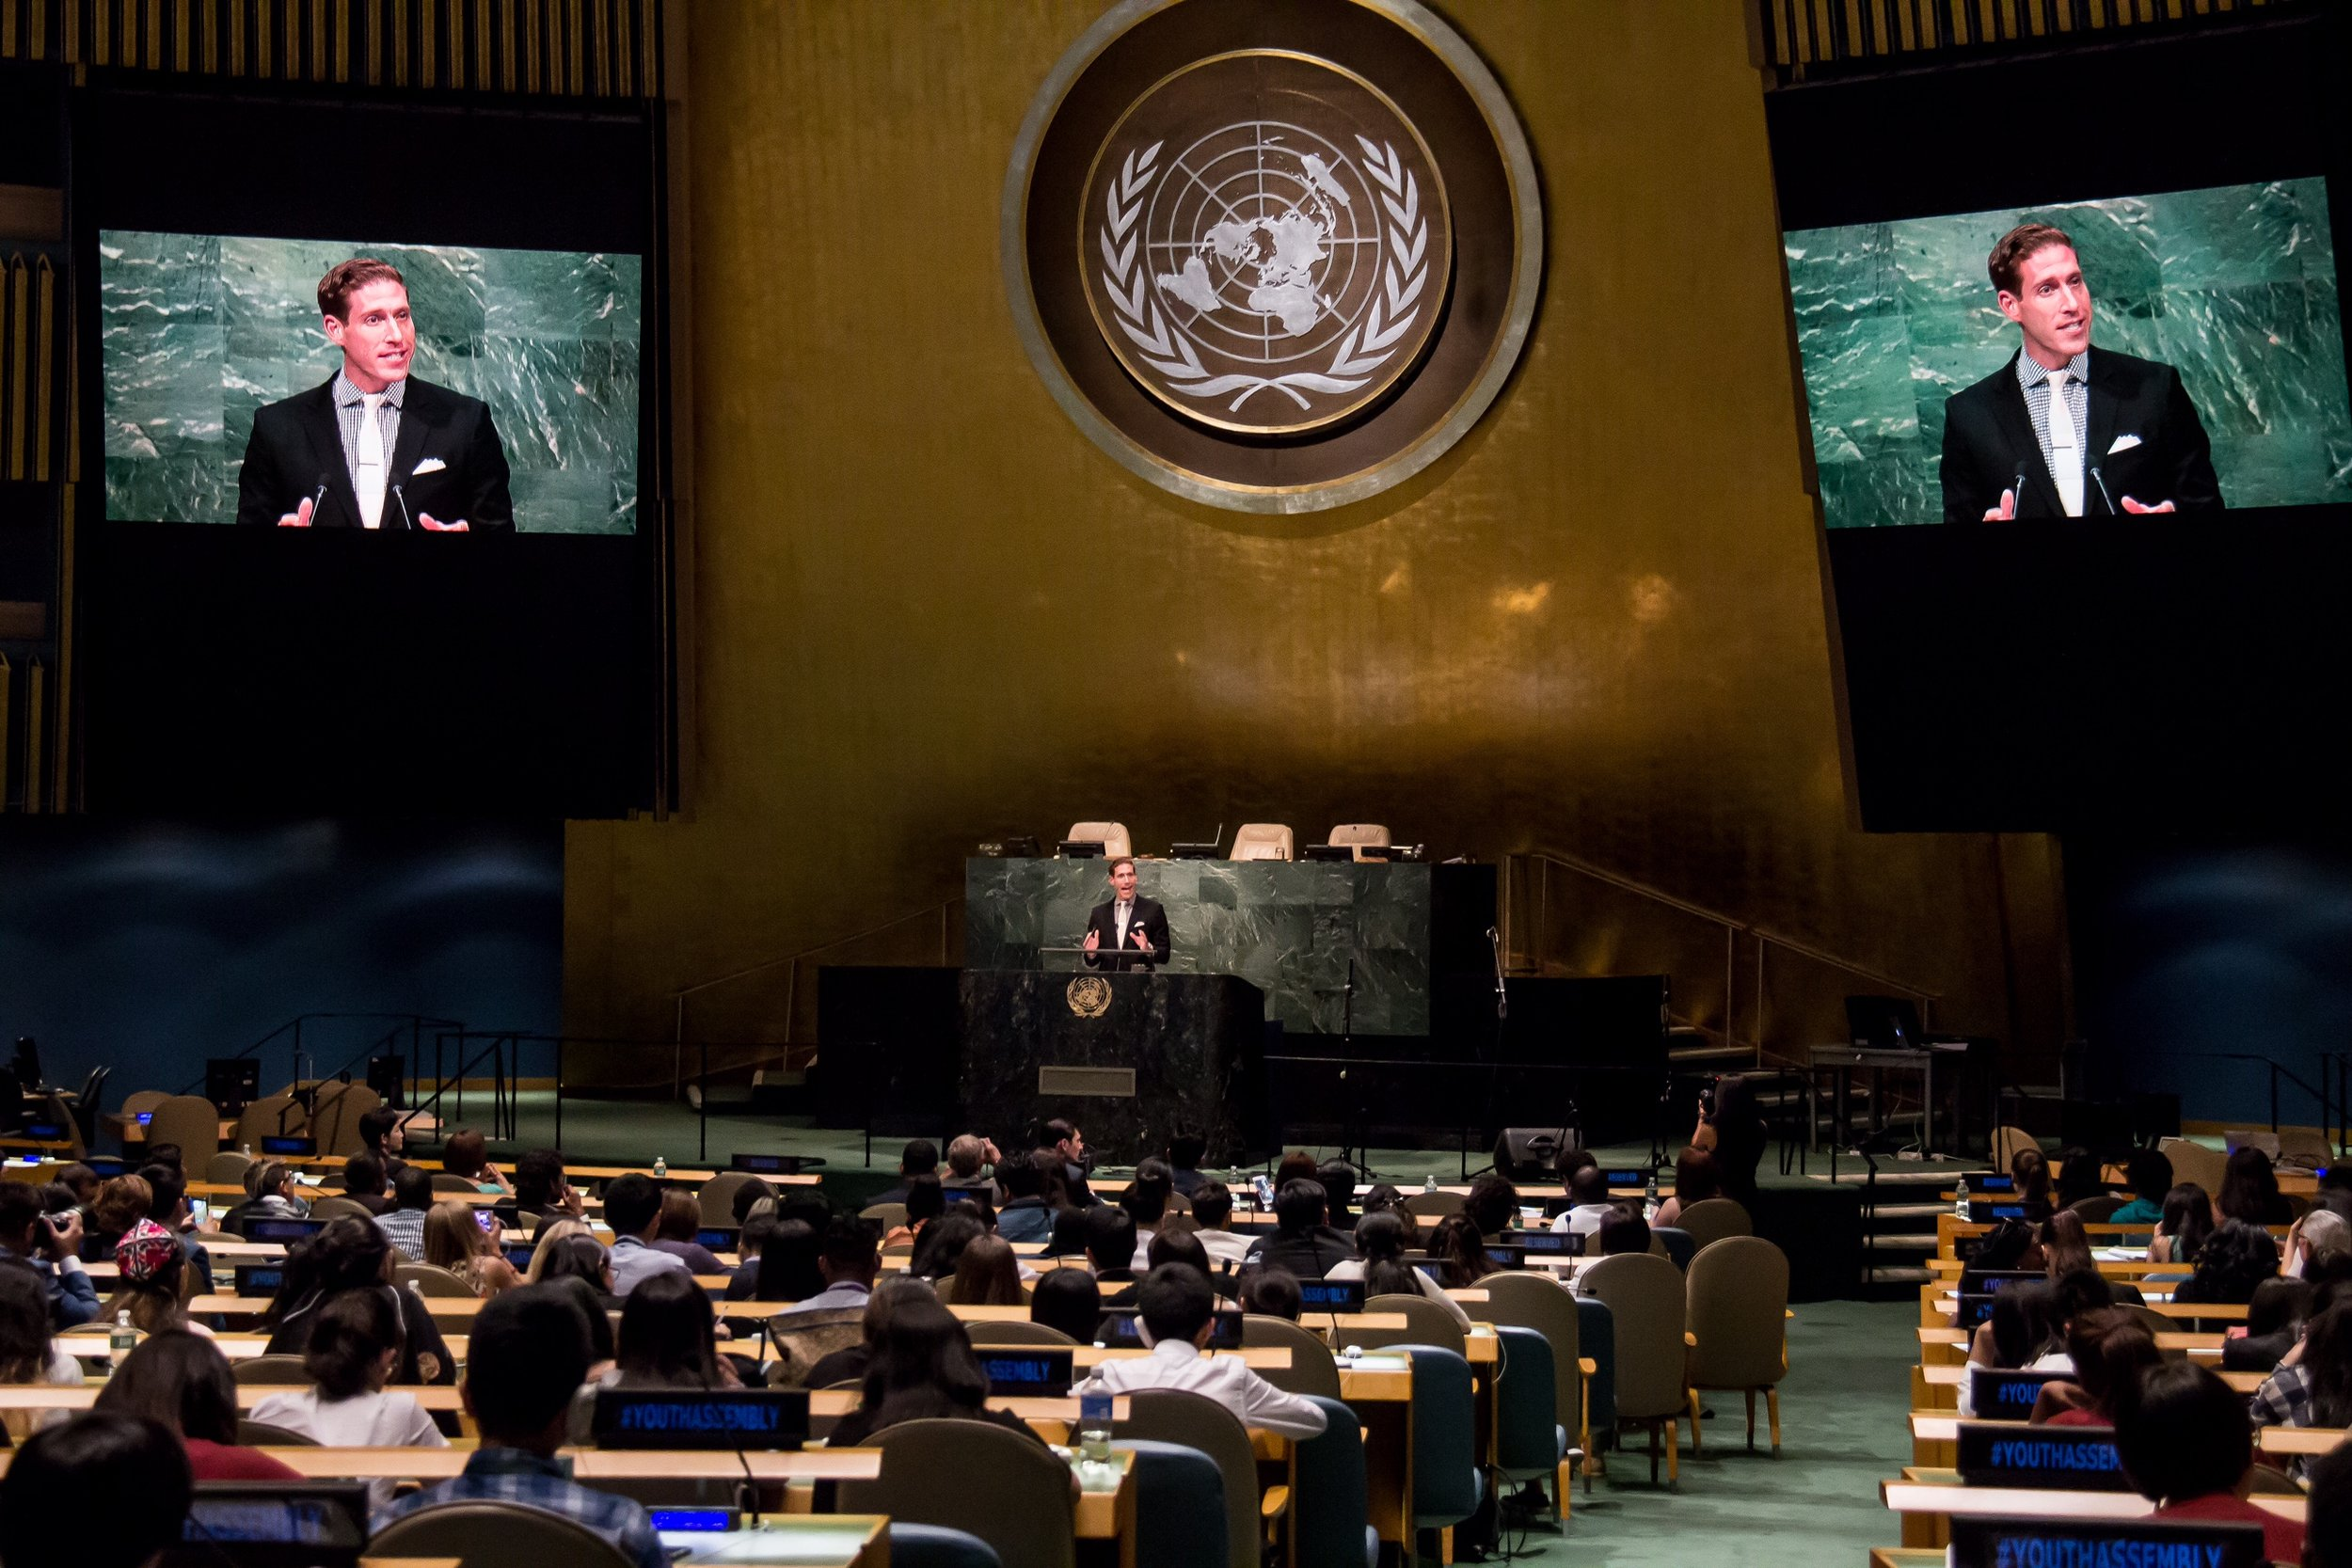 Addressing global youth leaders in the United Nations General Assembly on International Youth Day 2016